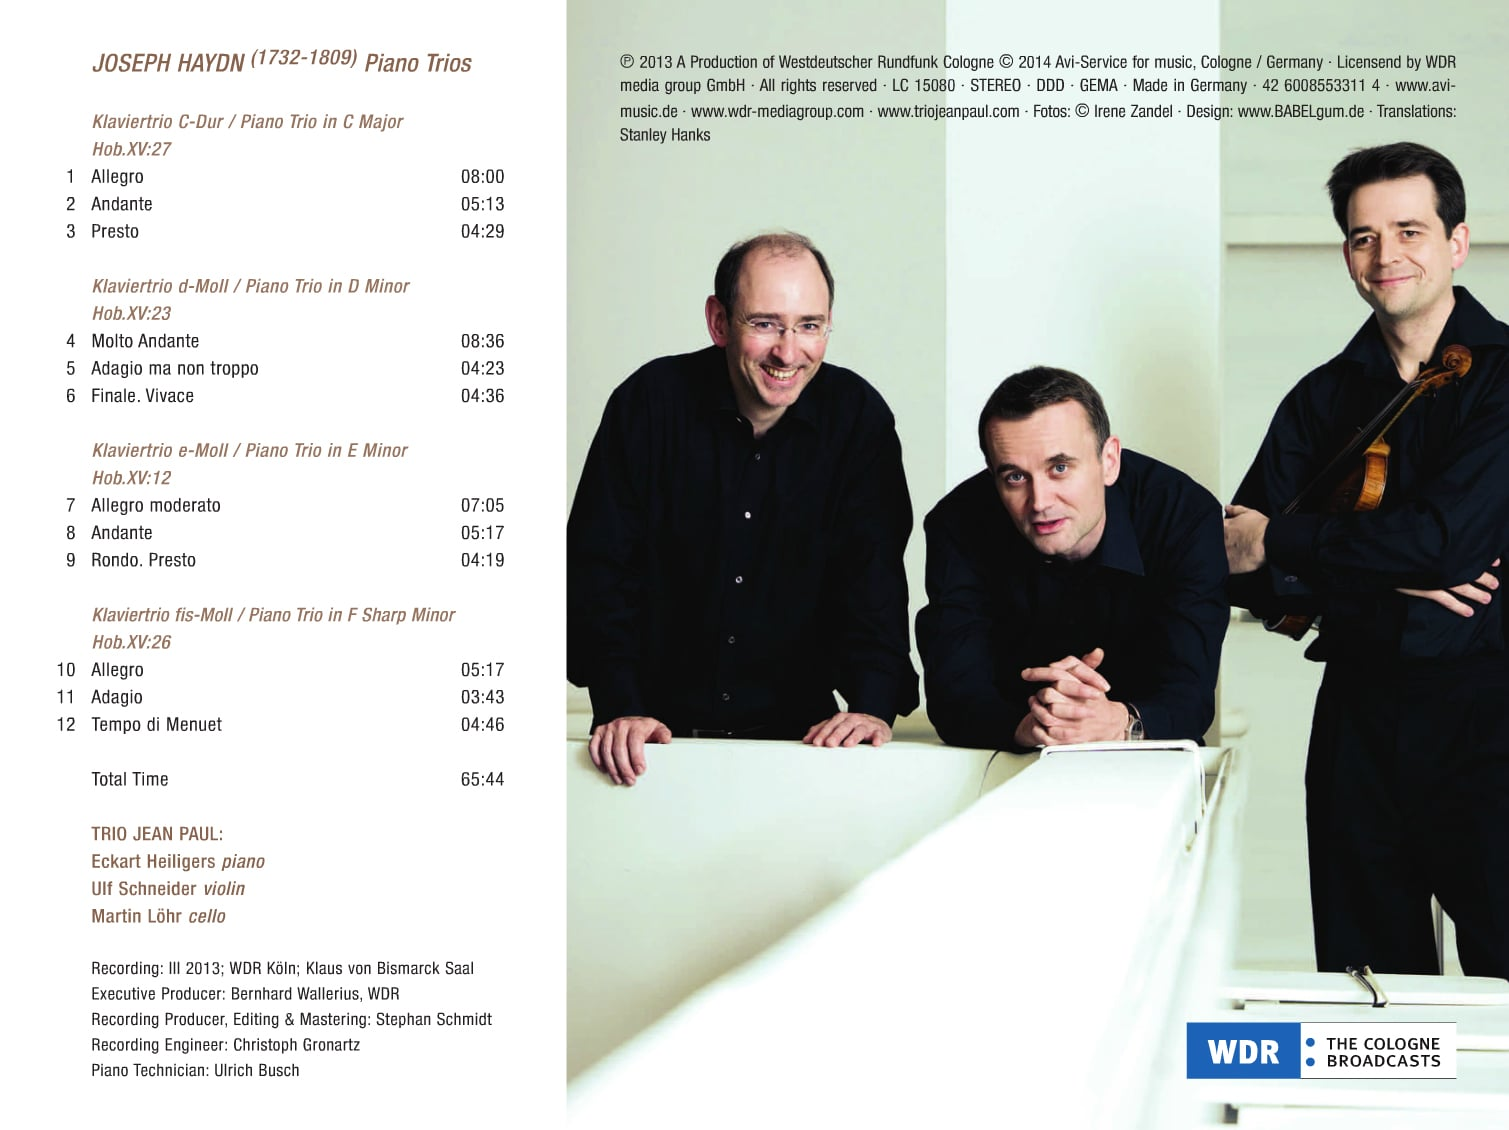 "Inlay ""Trio Jean Paul: Haydn Piano Trios"", Seite 2. © 2014 Avi-Service for music, Cologne / Germany ・ Licensend by WDR media group GmbH ・Fotos © Irene Zandel ・ Coverdesign: www.BABELgum.de"